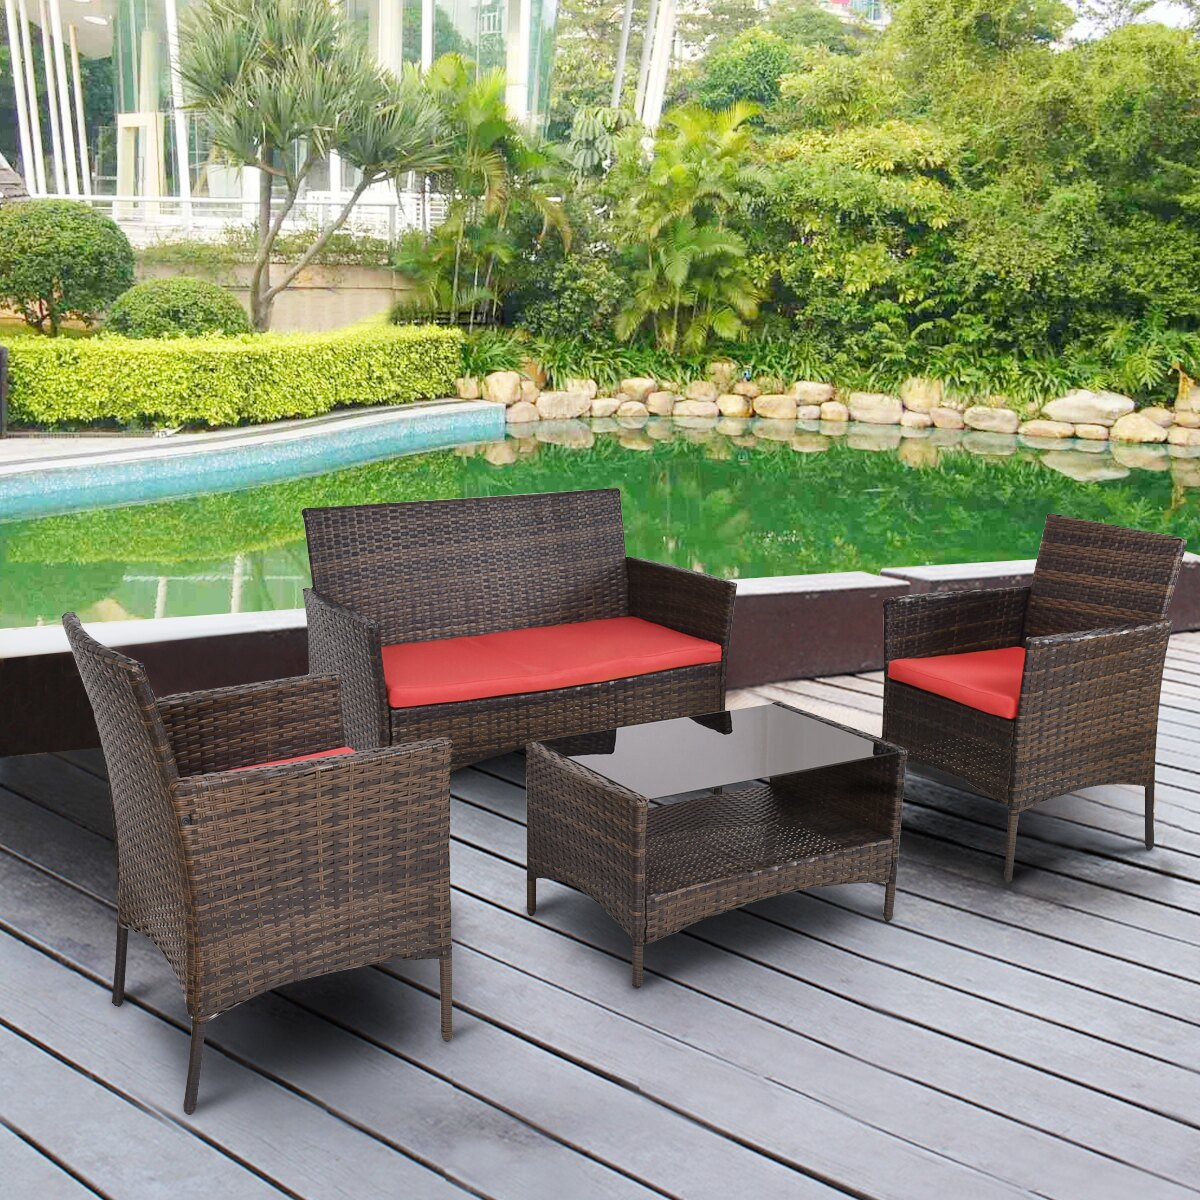 Costway Costway 4 Pcs Outdoor Patio Rattan Furniture Set Table